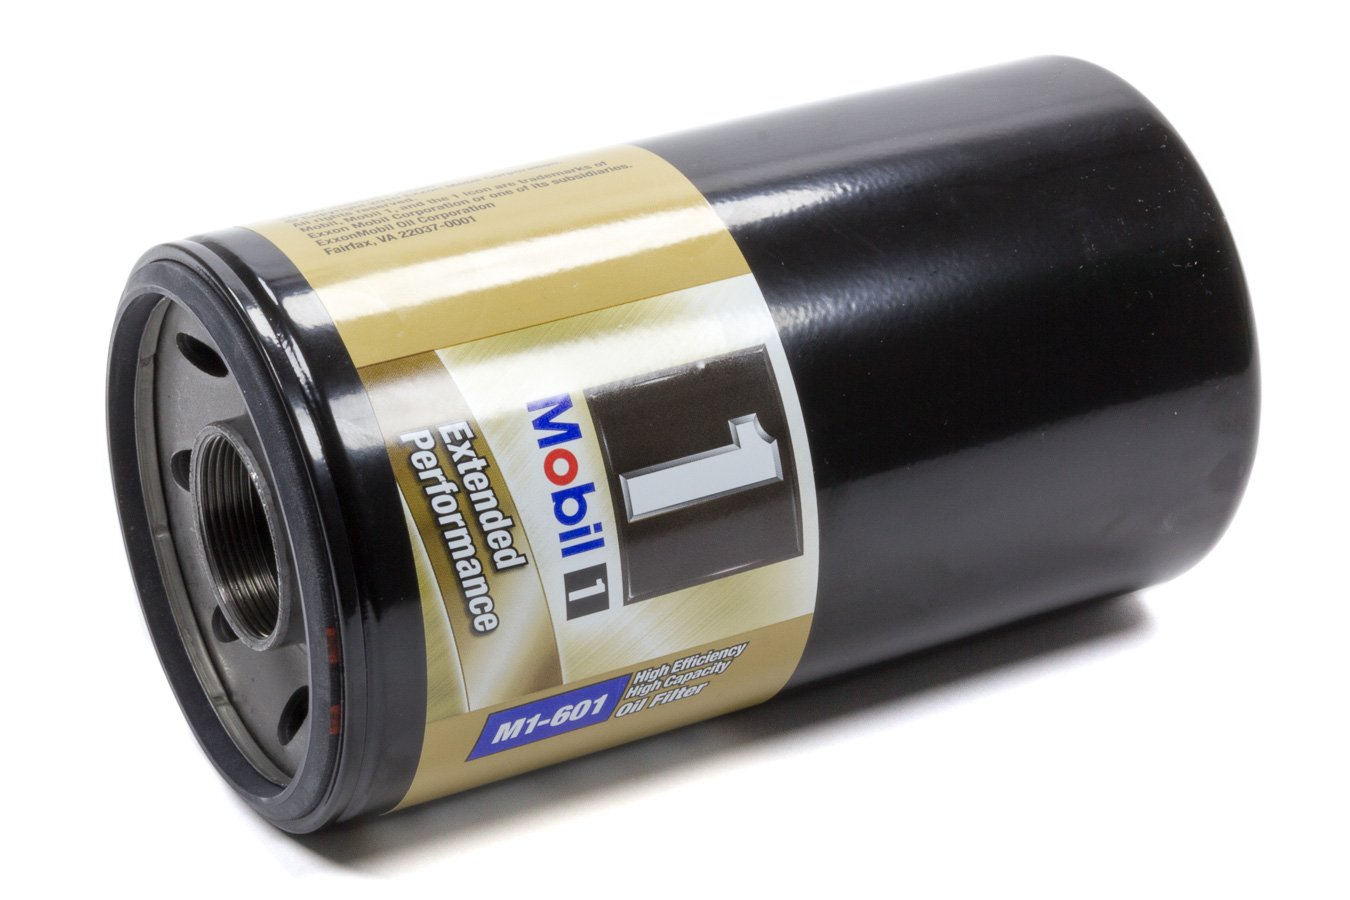 Mobil 1 M1-601 Extended Performance Oil Filter (Pack of 2) by Mobil 1